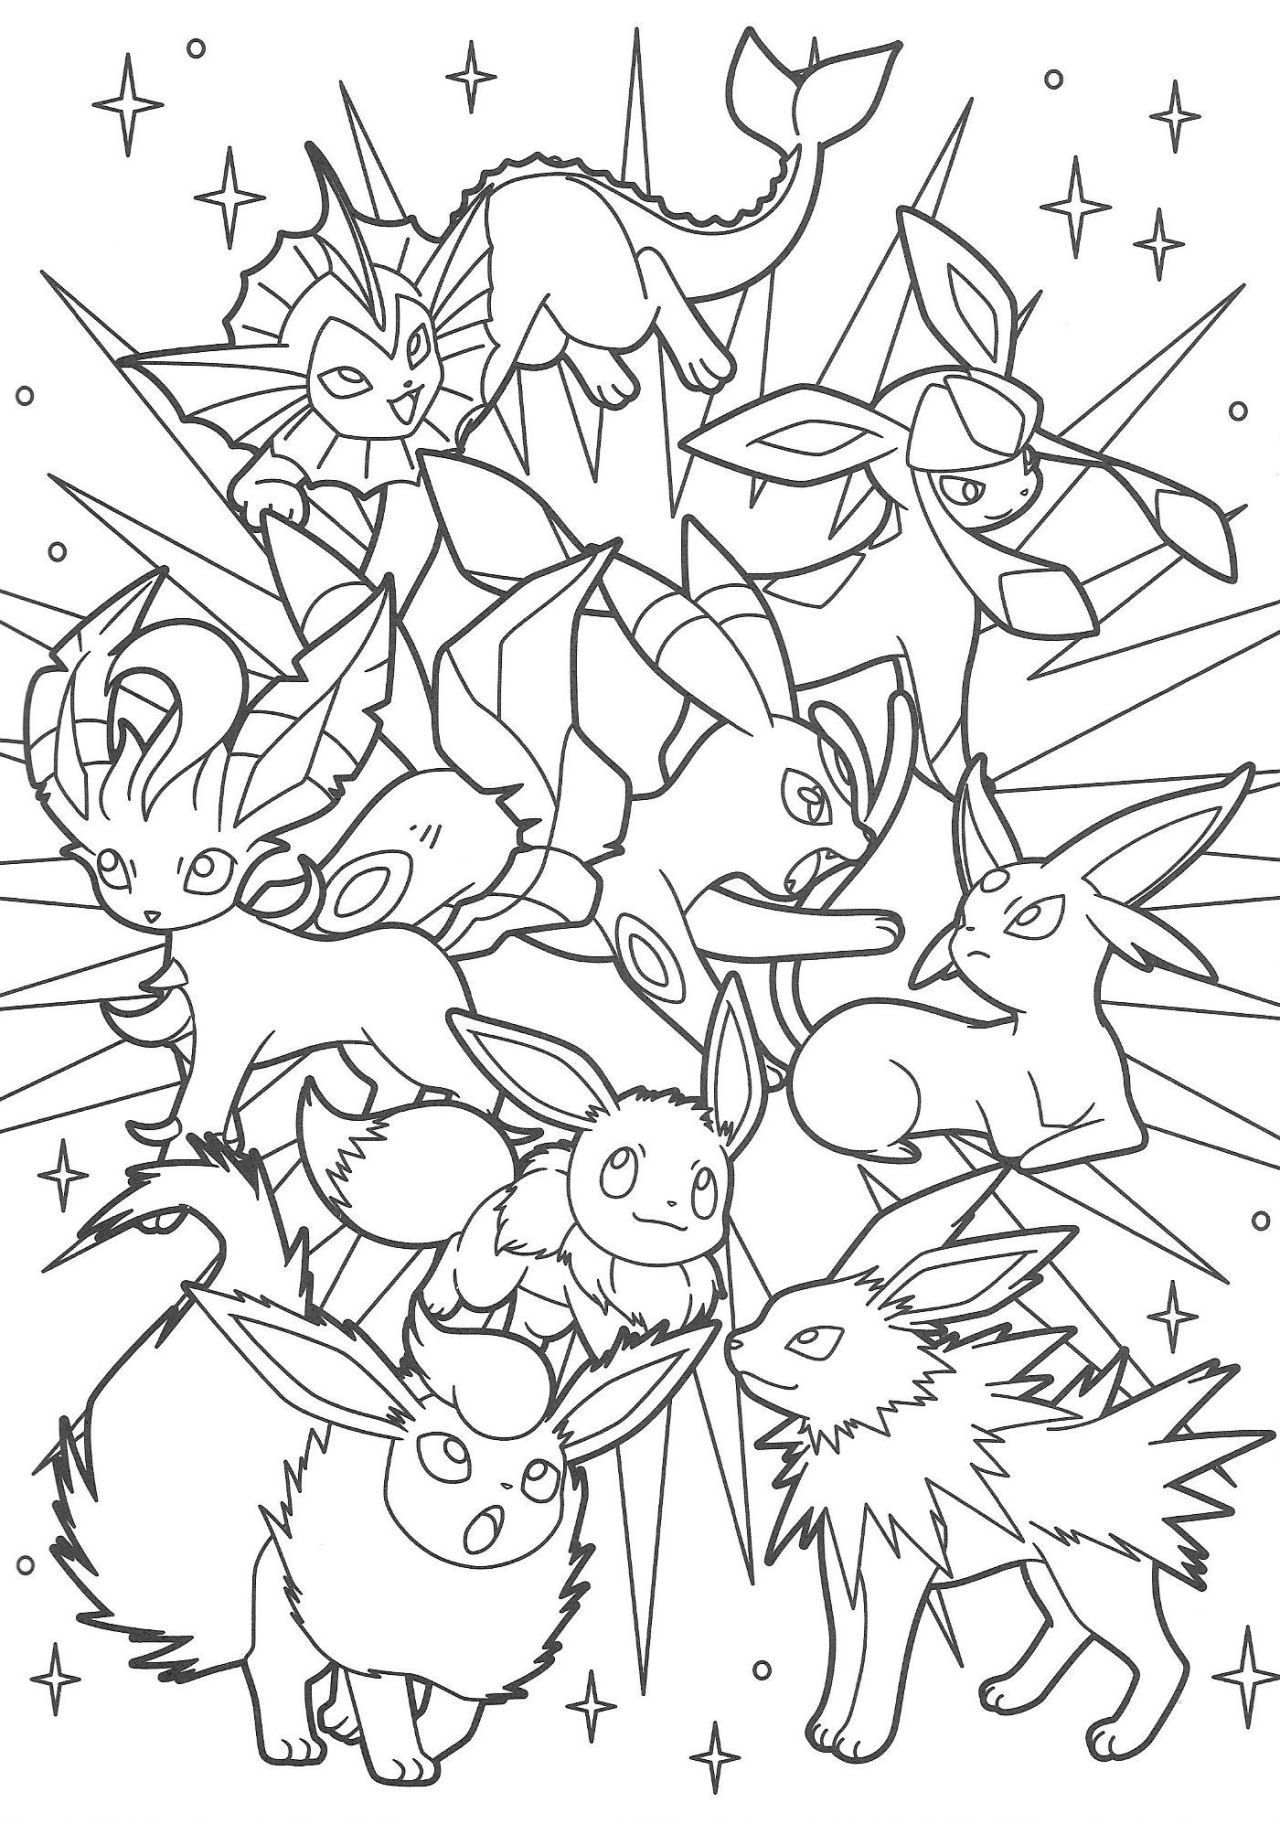 Hottest Pictures Coloring Books Anime Thoughts Here Is The Quintessential Self Help Guide To Col In 2021 Pokemon Coloring Sheets Pikachu Coloring Page Pokemon Coloring